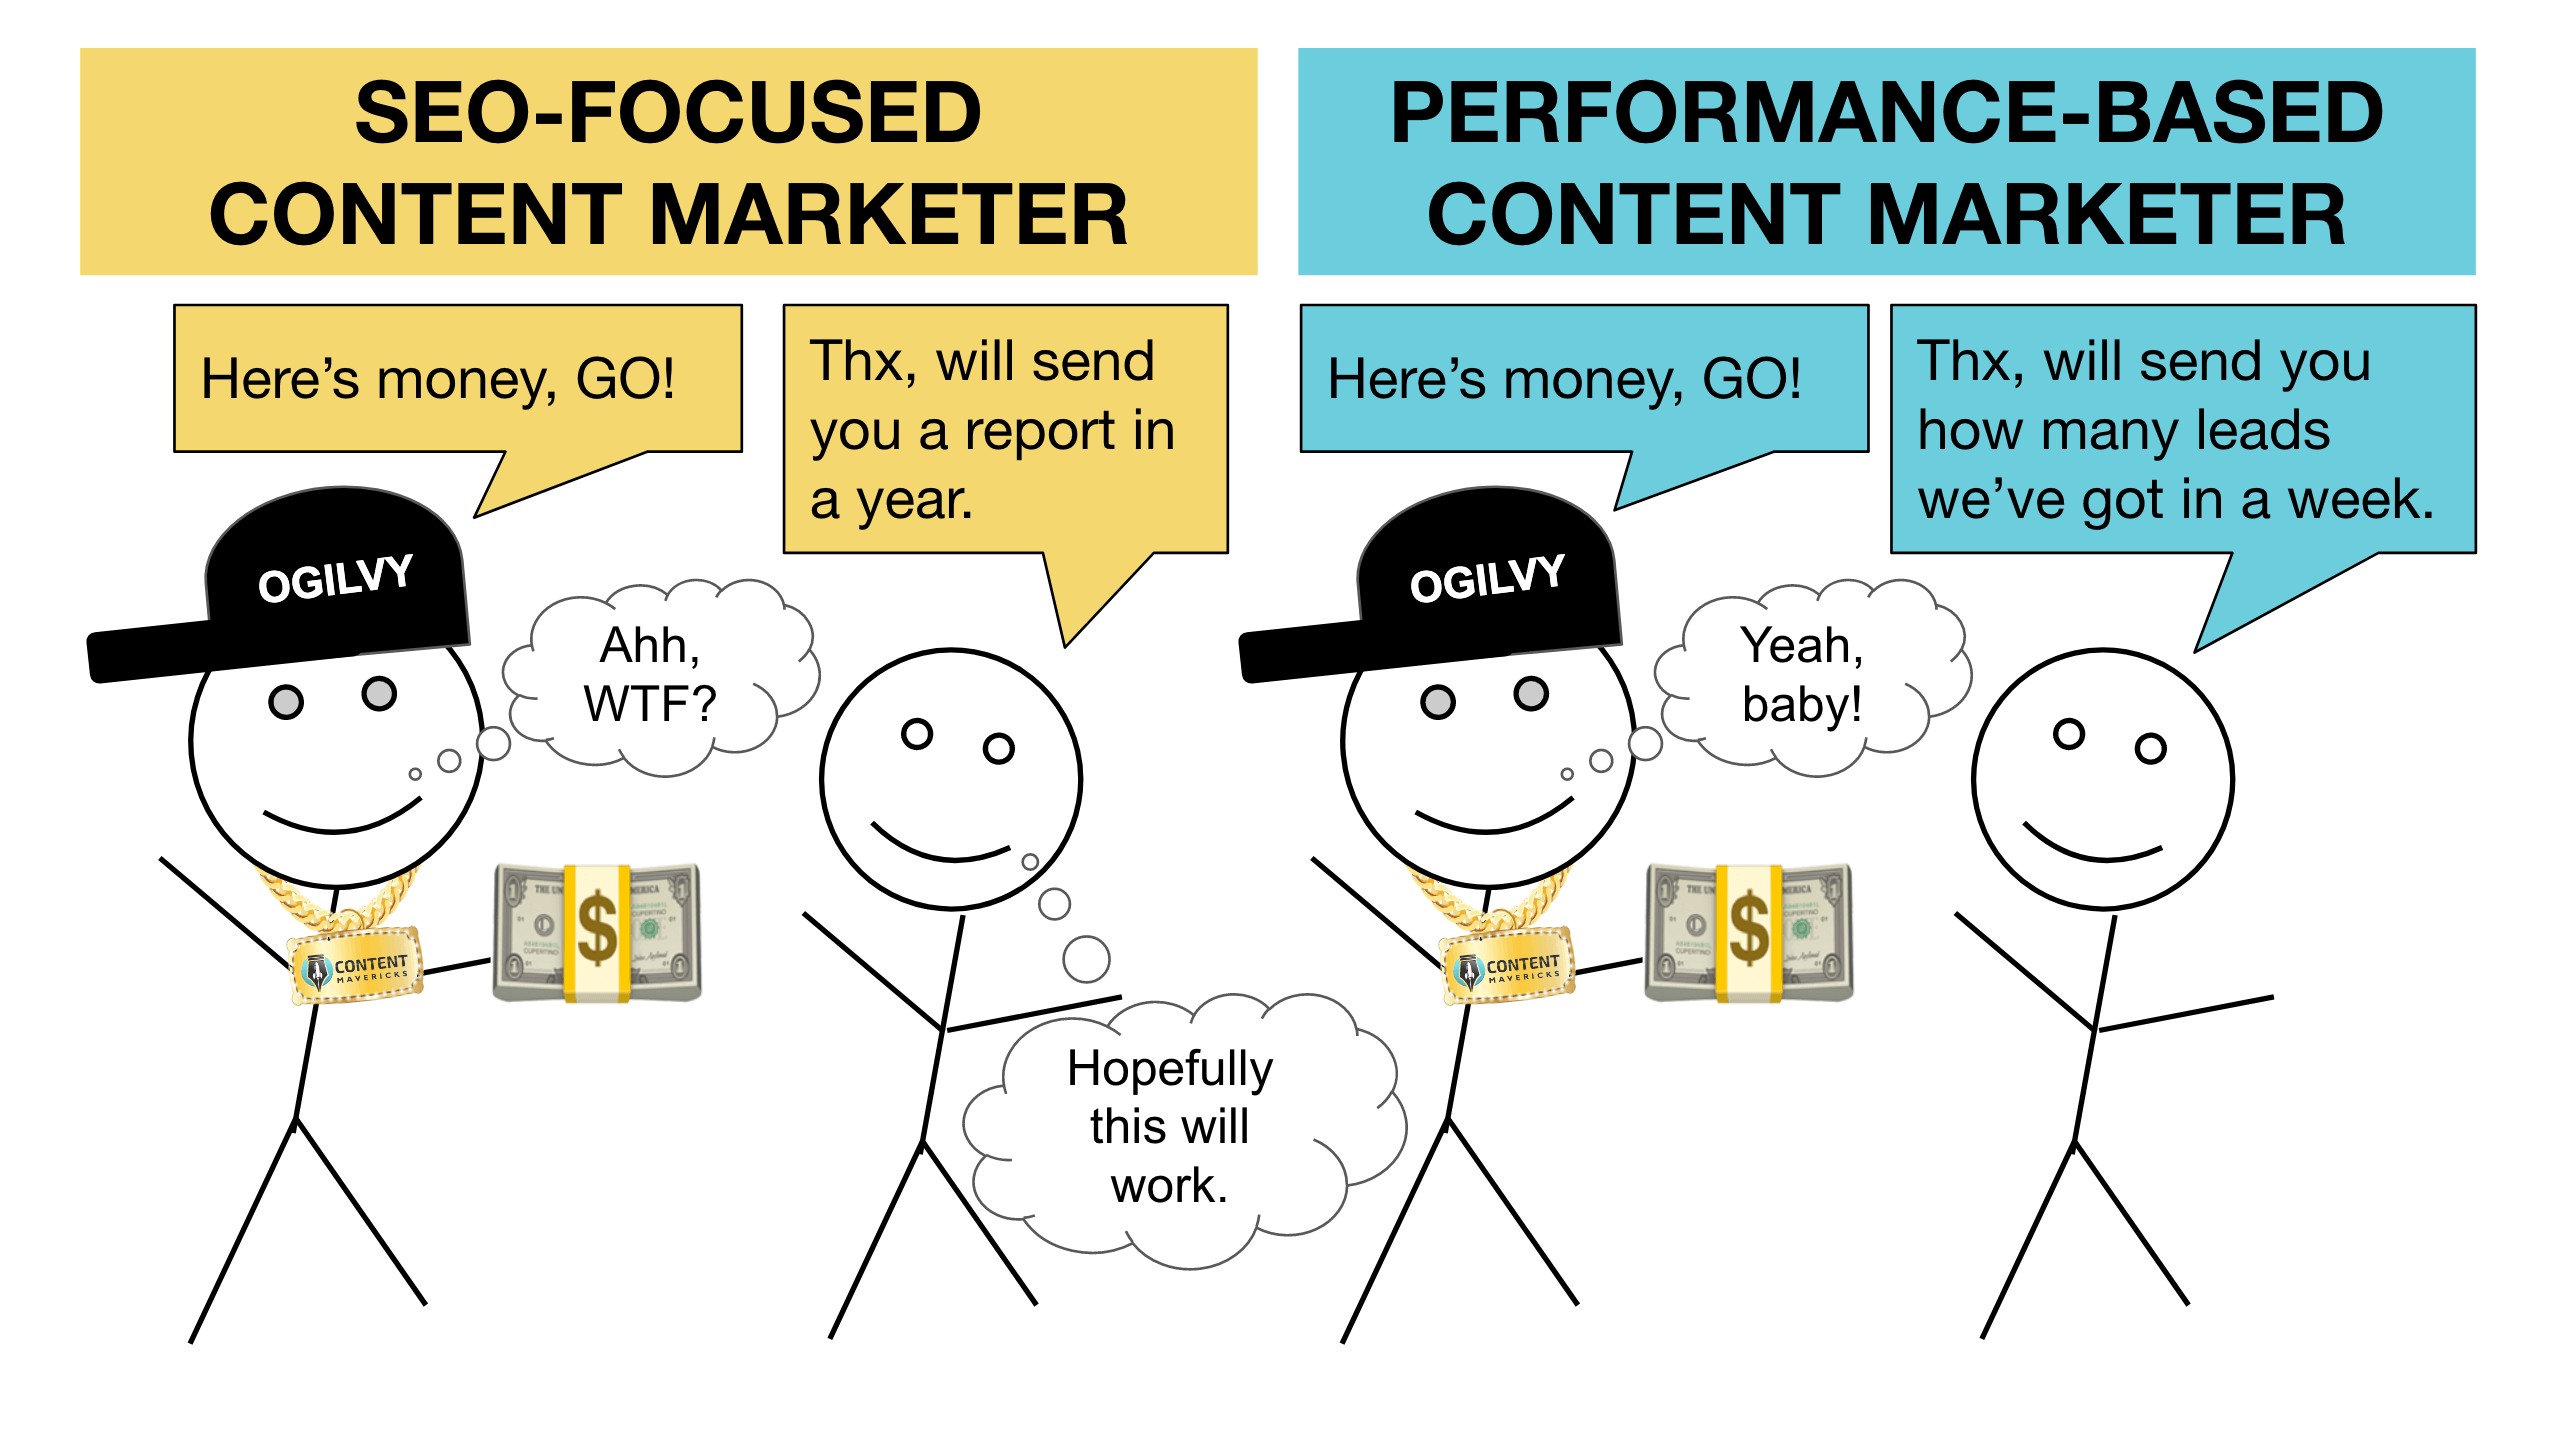 seo vs performance content marketer image